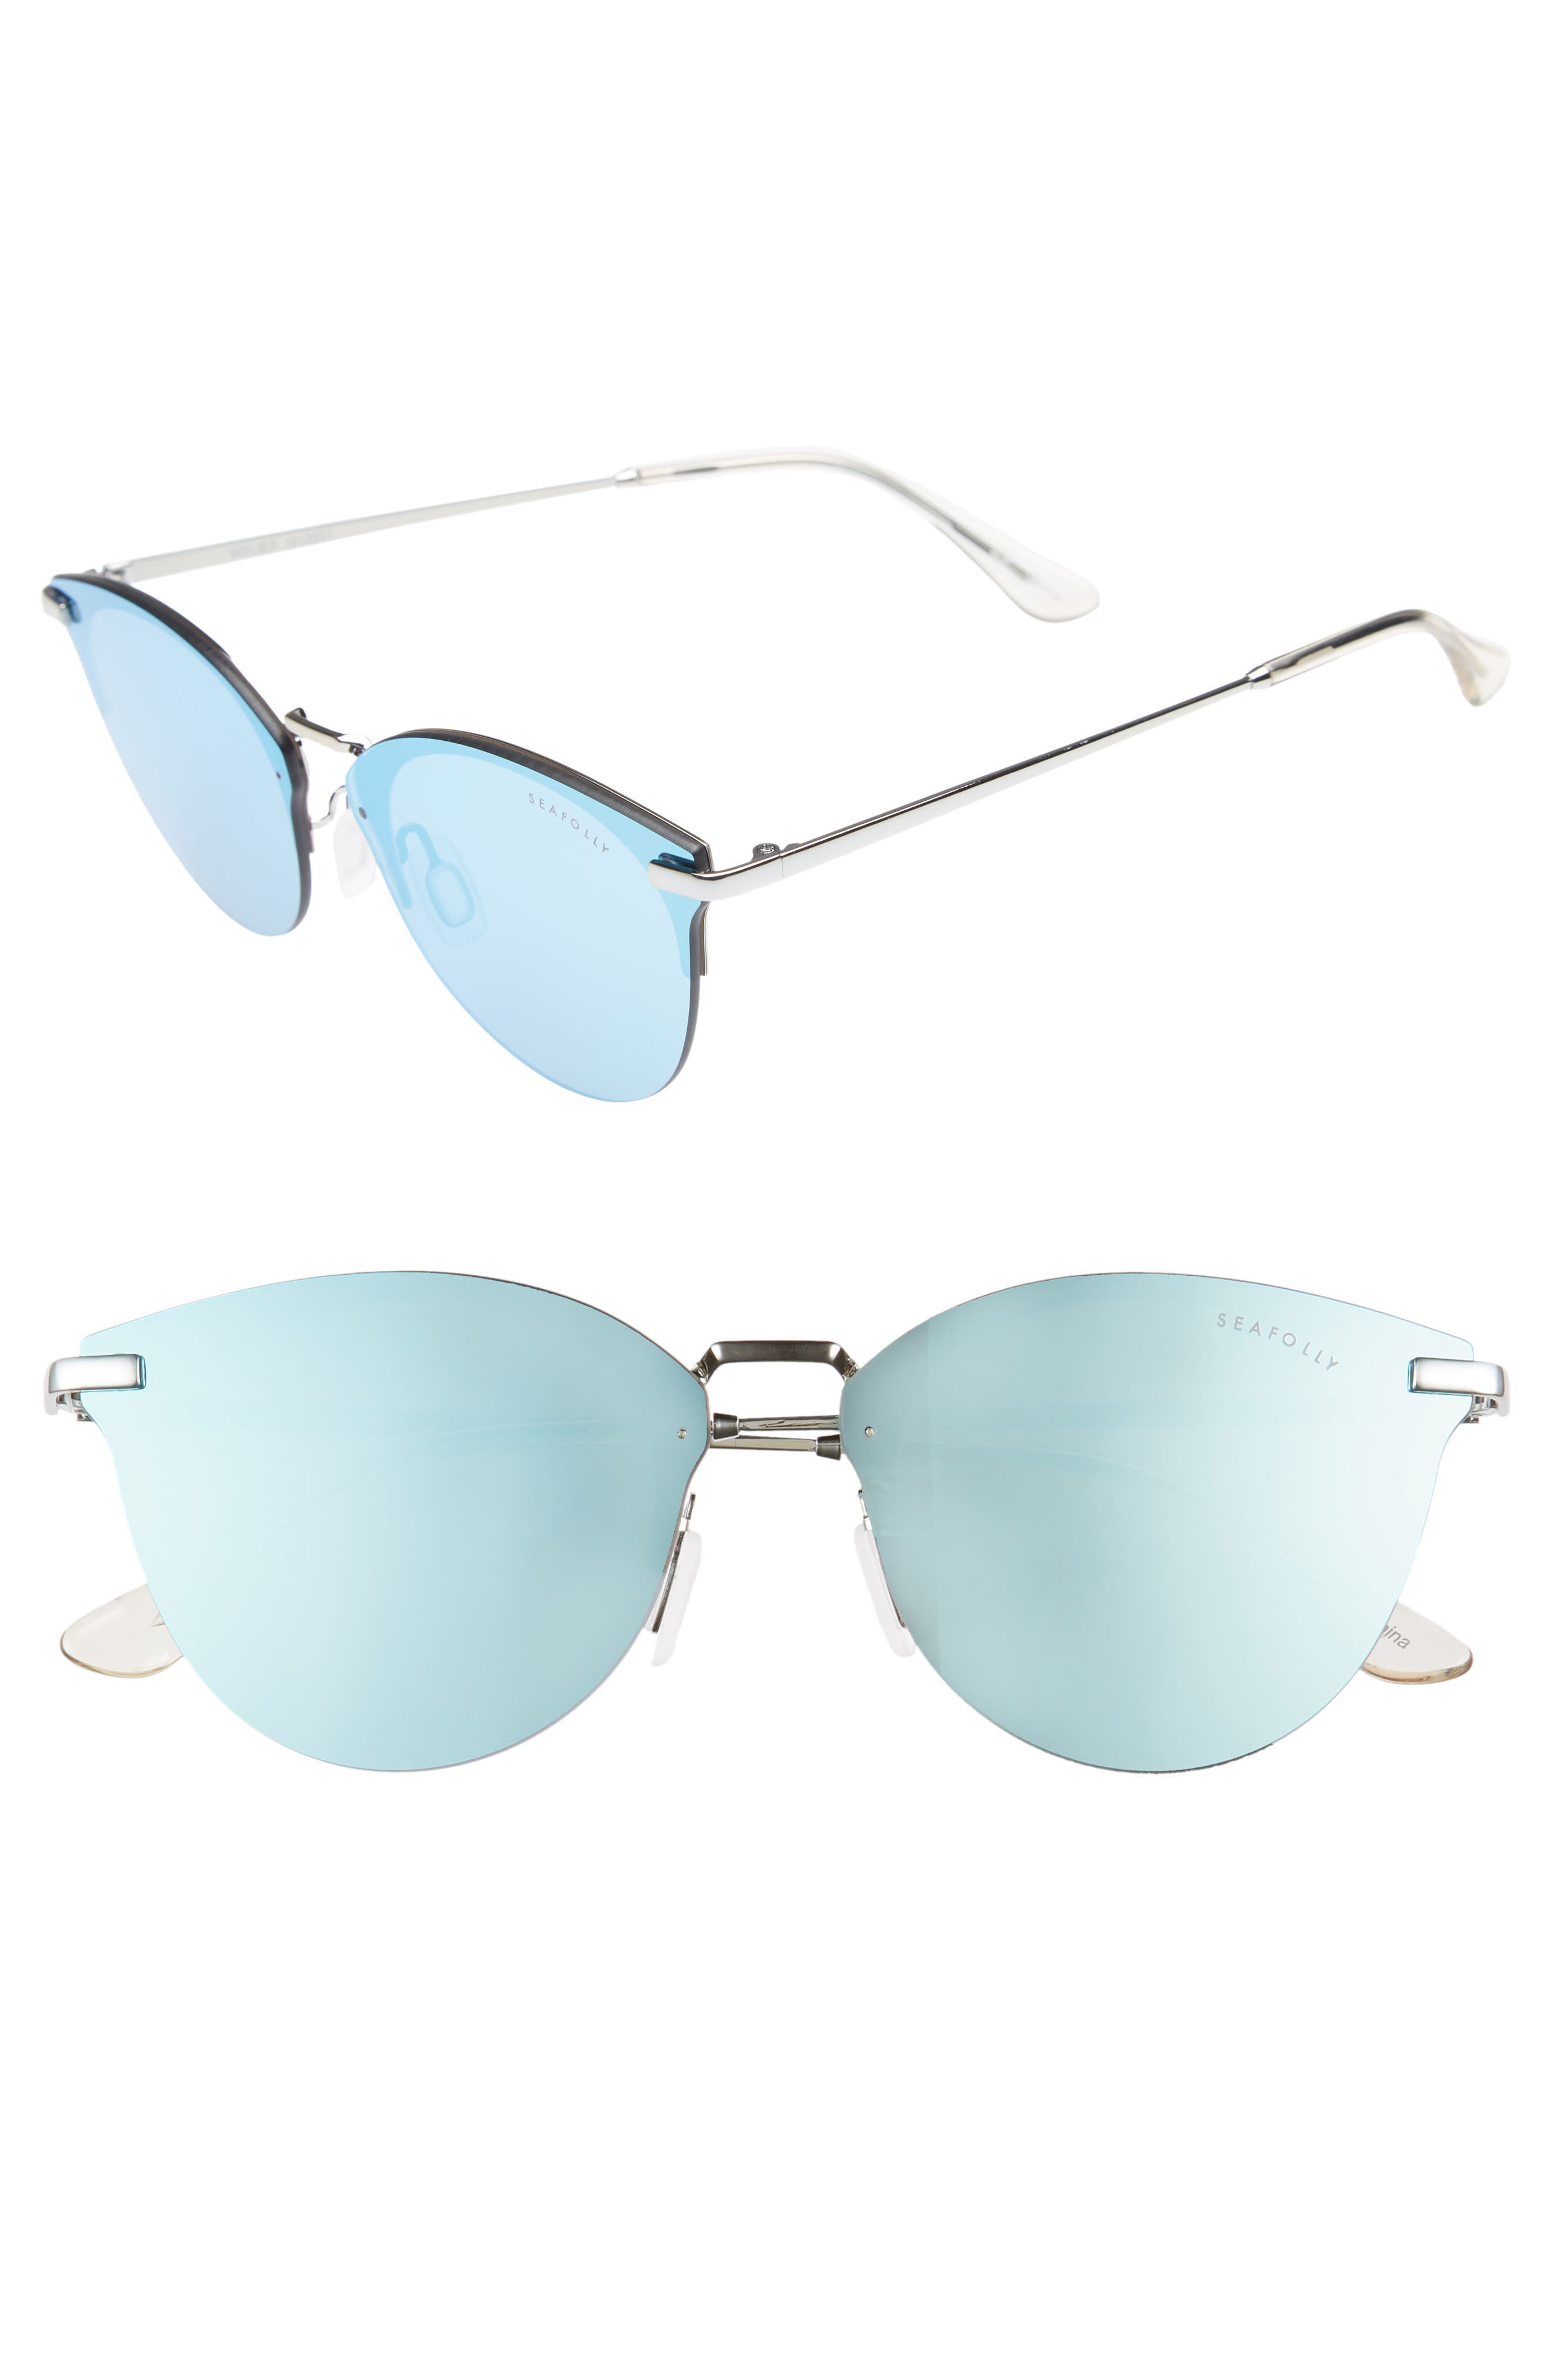 Wylies 50mm Rimless Sunglasses,                         Main,                         color, Ocean